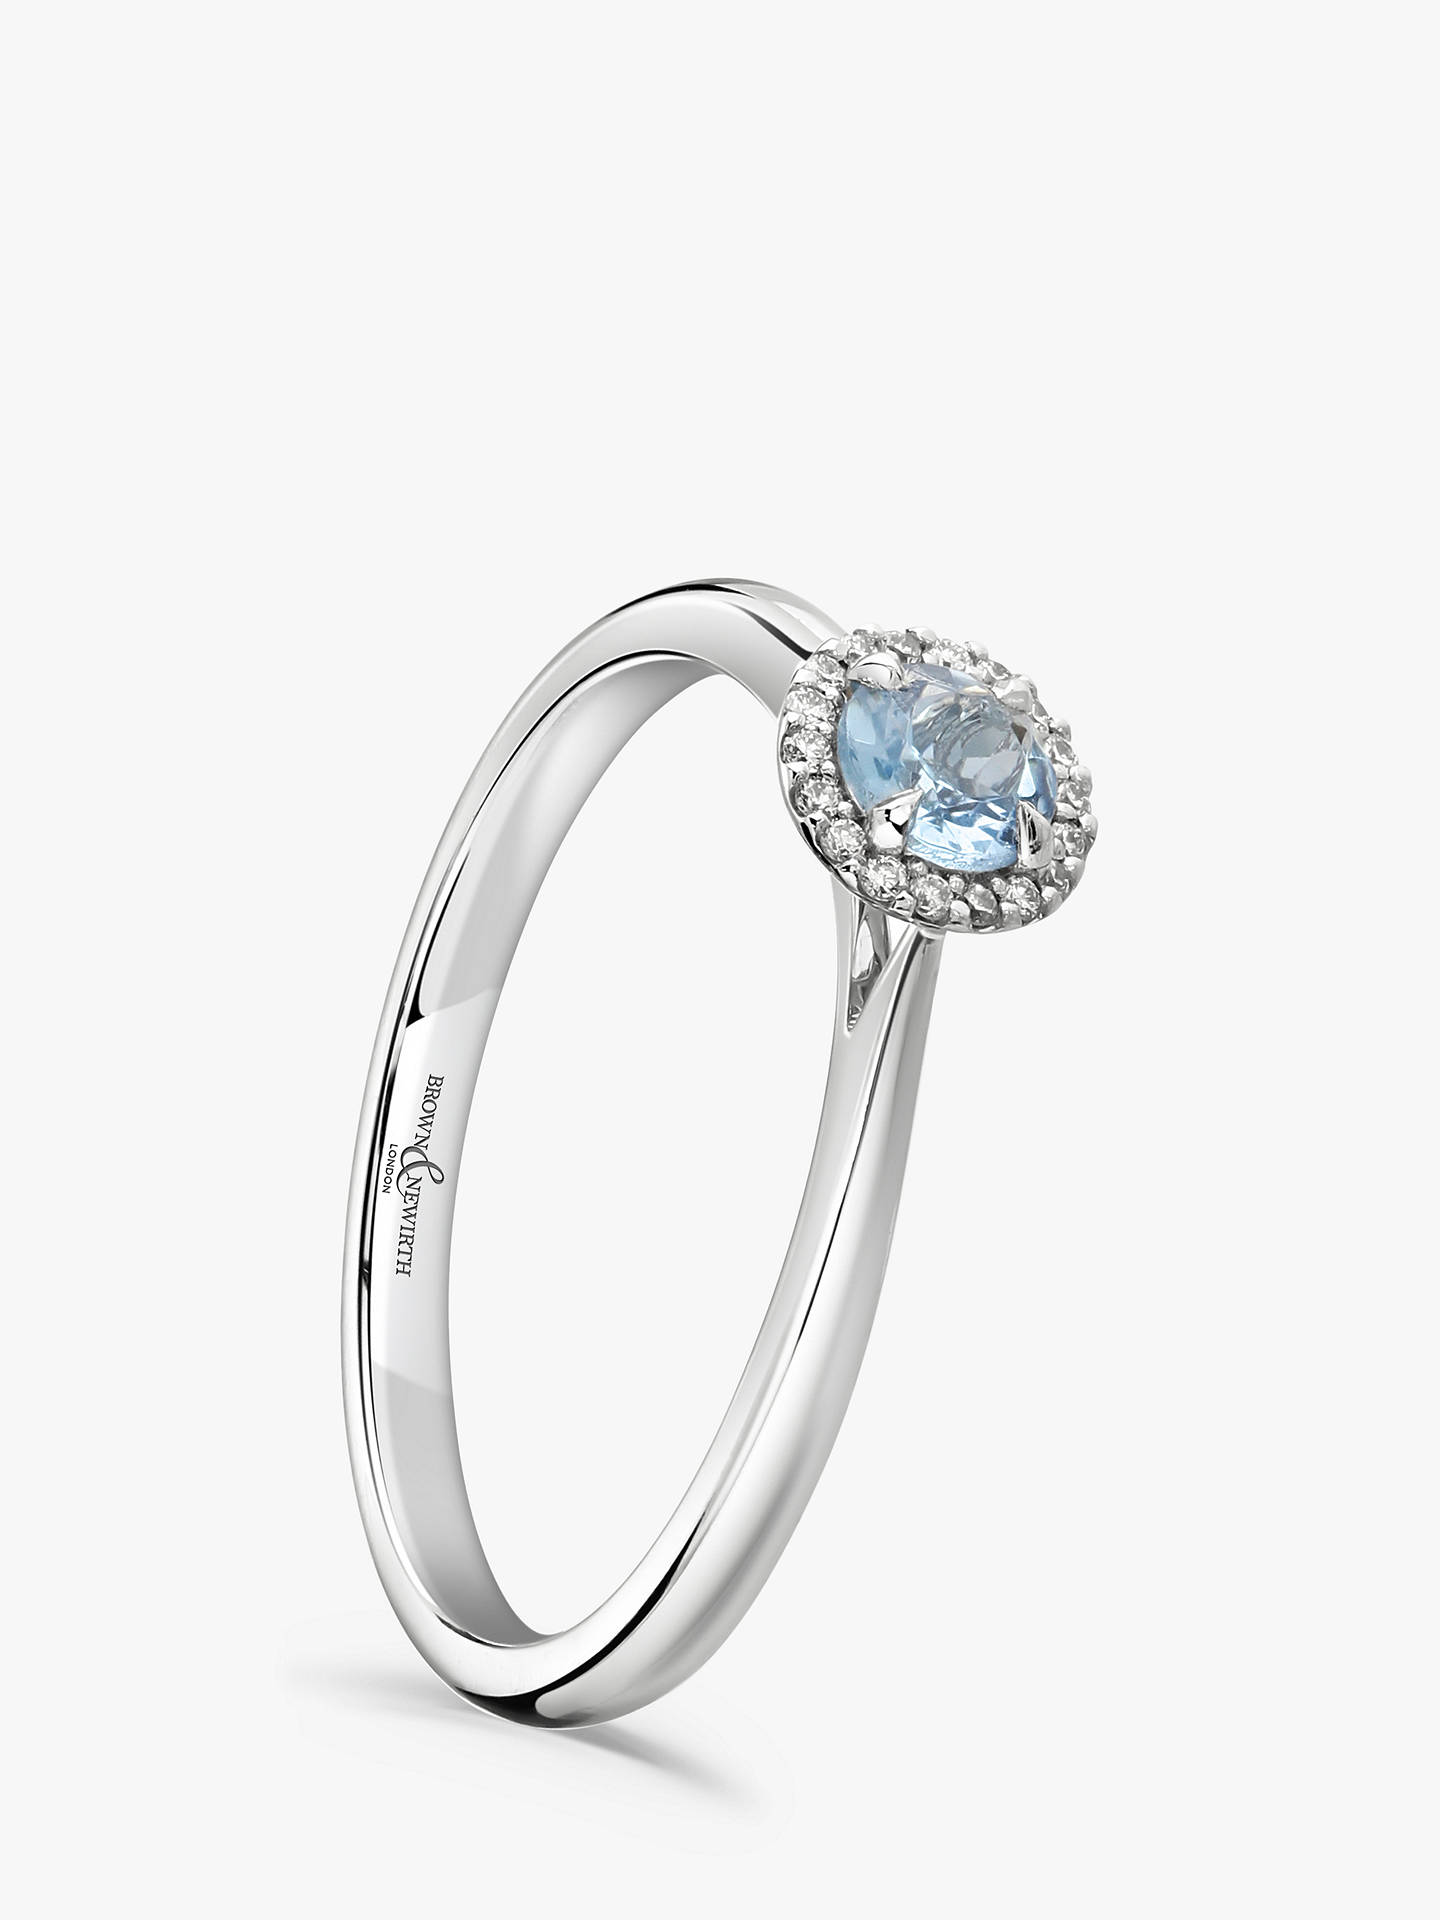 BuyBrown & Newirth 18ct White Gold Round Aquamarine and Diamond Cluster Engagement Ring, 0.03ct Online at johnlewis.com